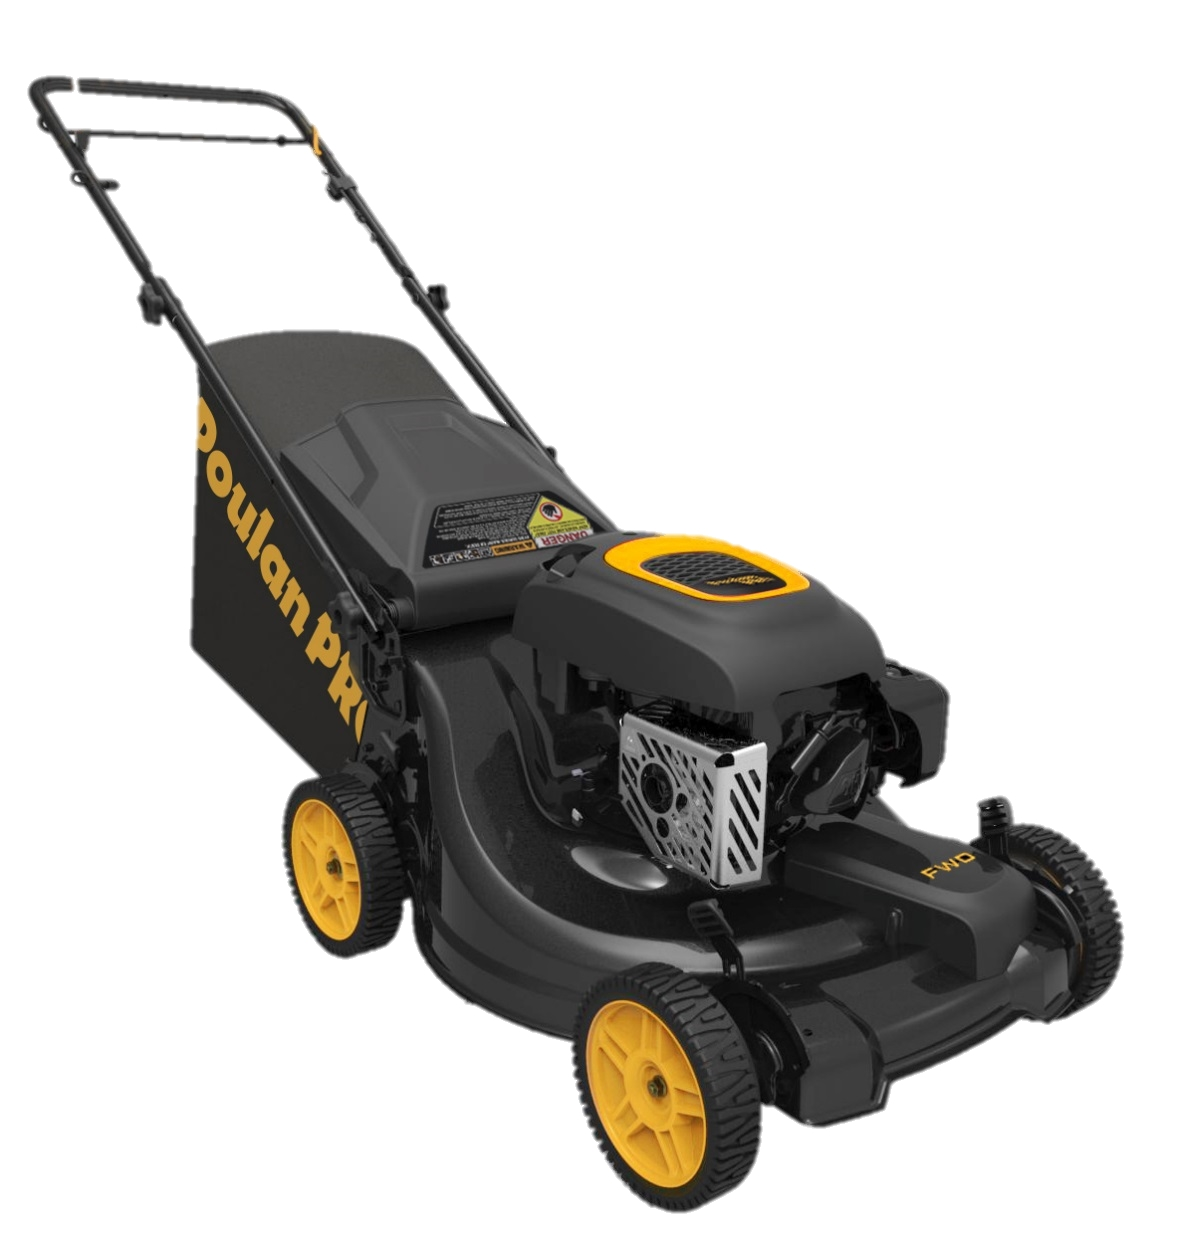 Poulan Pro 961420135 21inch Selfpropelled Mower At Sutherlands. Selfpropelled Mower Poulan Pro 961420135. Opel. Poulan Self Propelled Mower Parts Diagram At Scoala.co